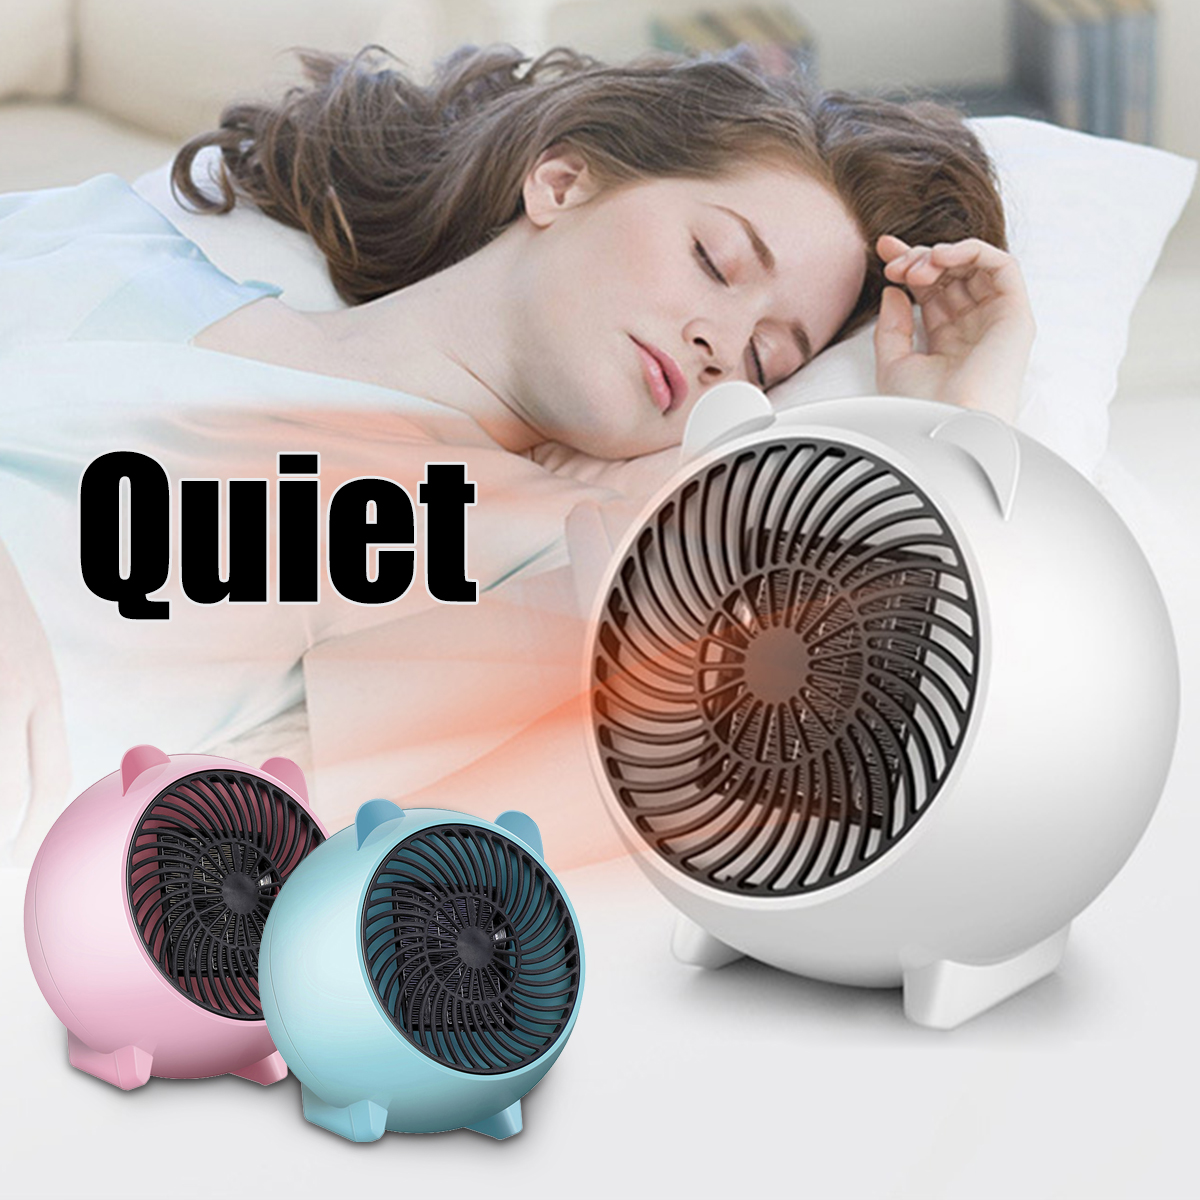 Portable Electric Heater Space Automatic Heating Fan Warmer Air Blower Quiet Home Office 250W 110V US plug Winter Heater Bask Fan